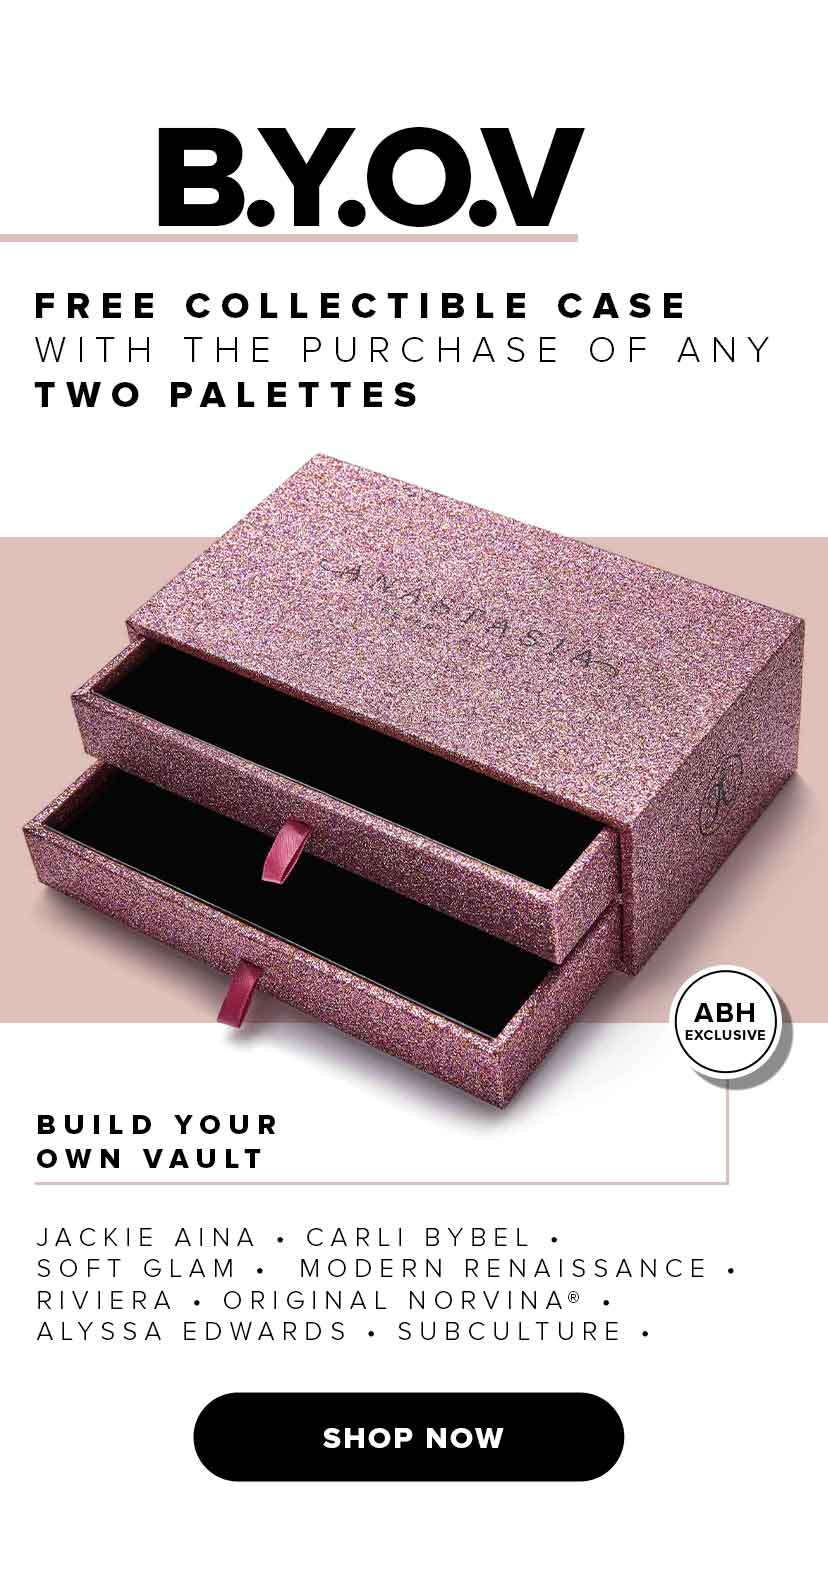 Free Collectible Case when you buy 2 palettes off